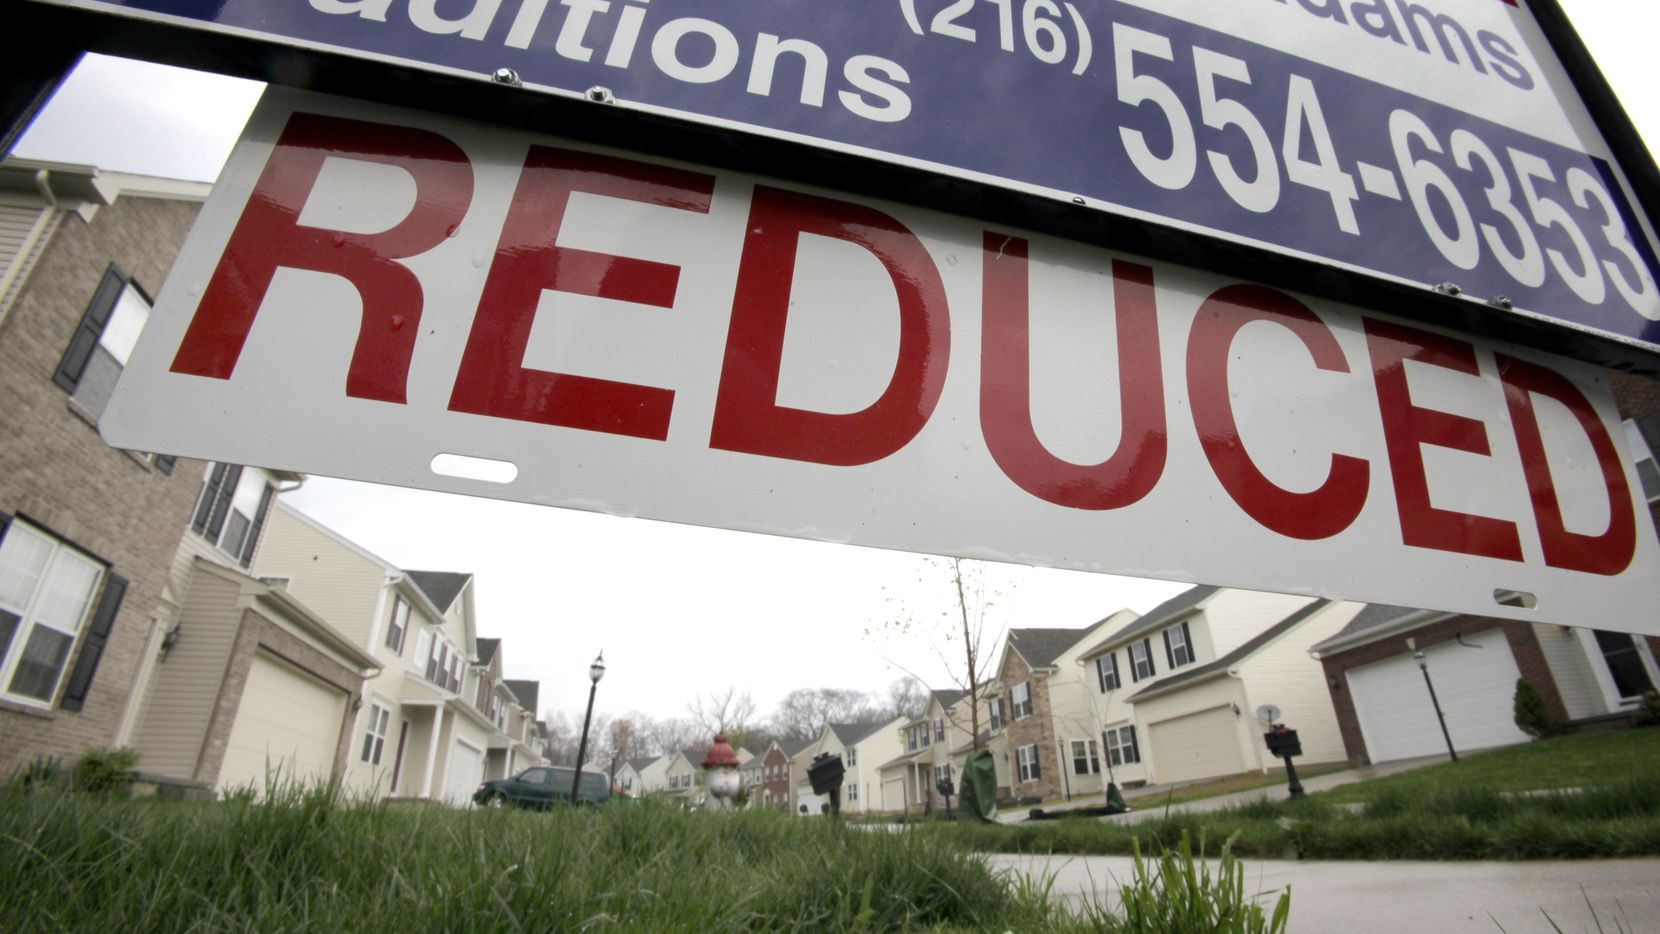 The home market could see falling prices and rising foreclosures due to the pandemic.